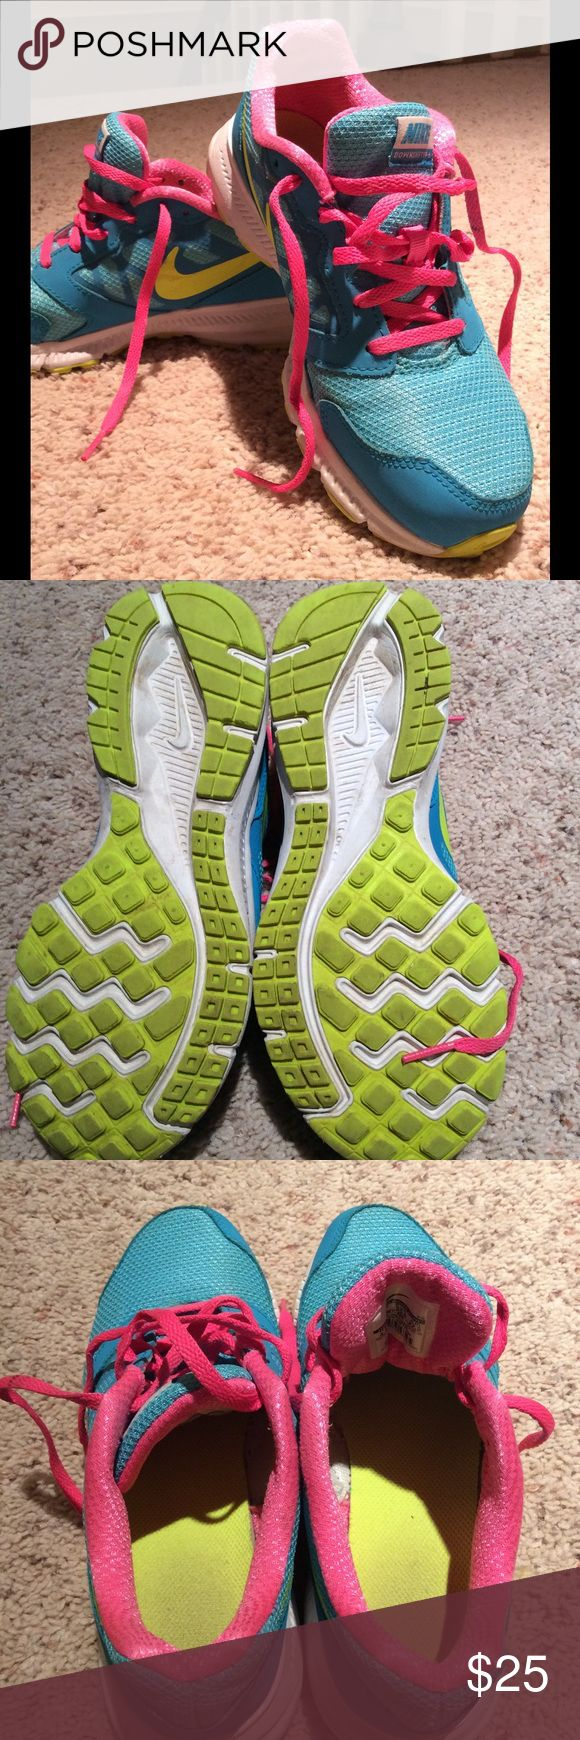 """Girls """"Almost Like New"""" Sneaker 👟 Bright colors and good Nike brand will help this girl run fast in these sneakers! My daughter wore about 4x before school said TOO BRIGHT. Great condition. Called the """"Downshifter 6"""" Nike Shoes Sneakers"""